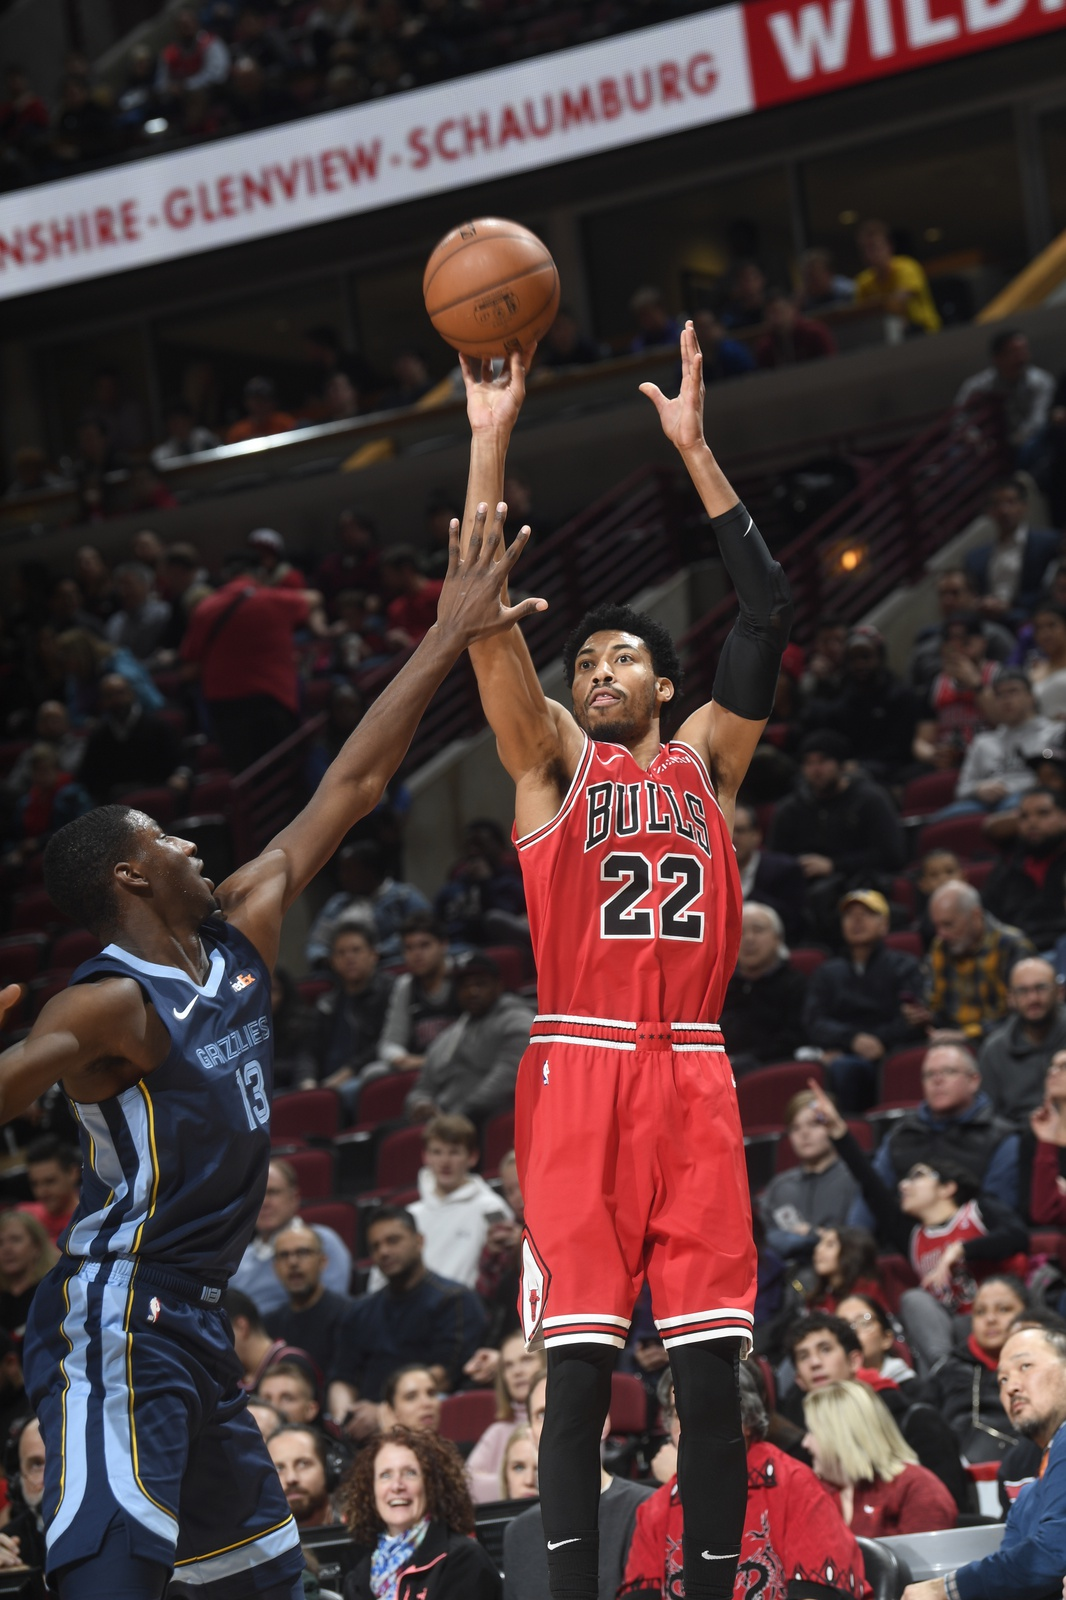 Otto Porter Jr. of the Chicago Bulls shoots the ball during a game against the Memphis Grizzlies.